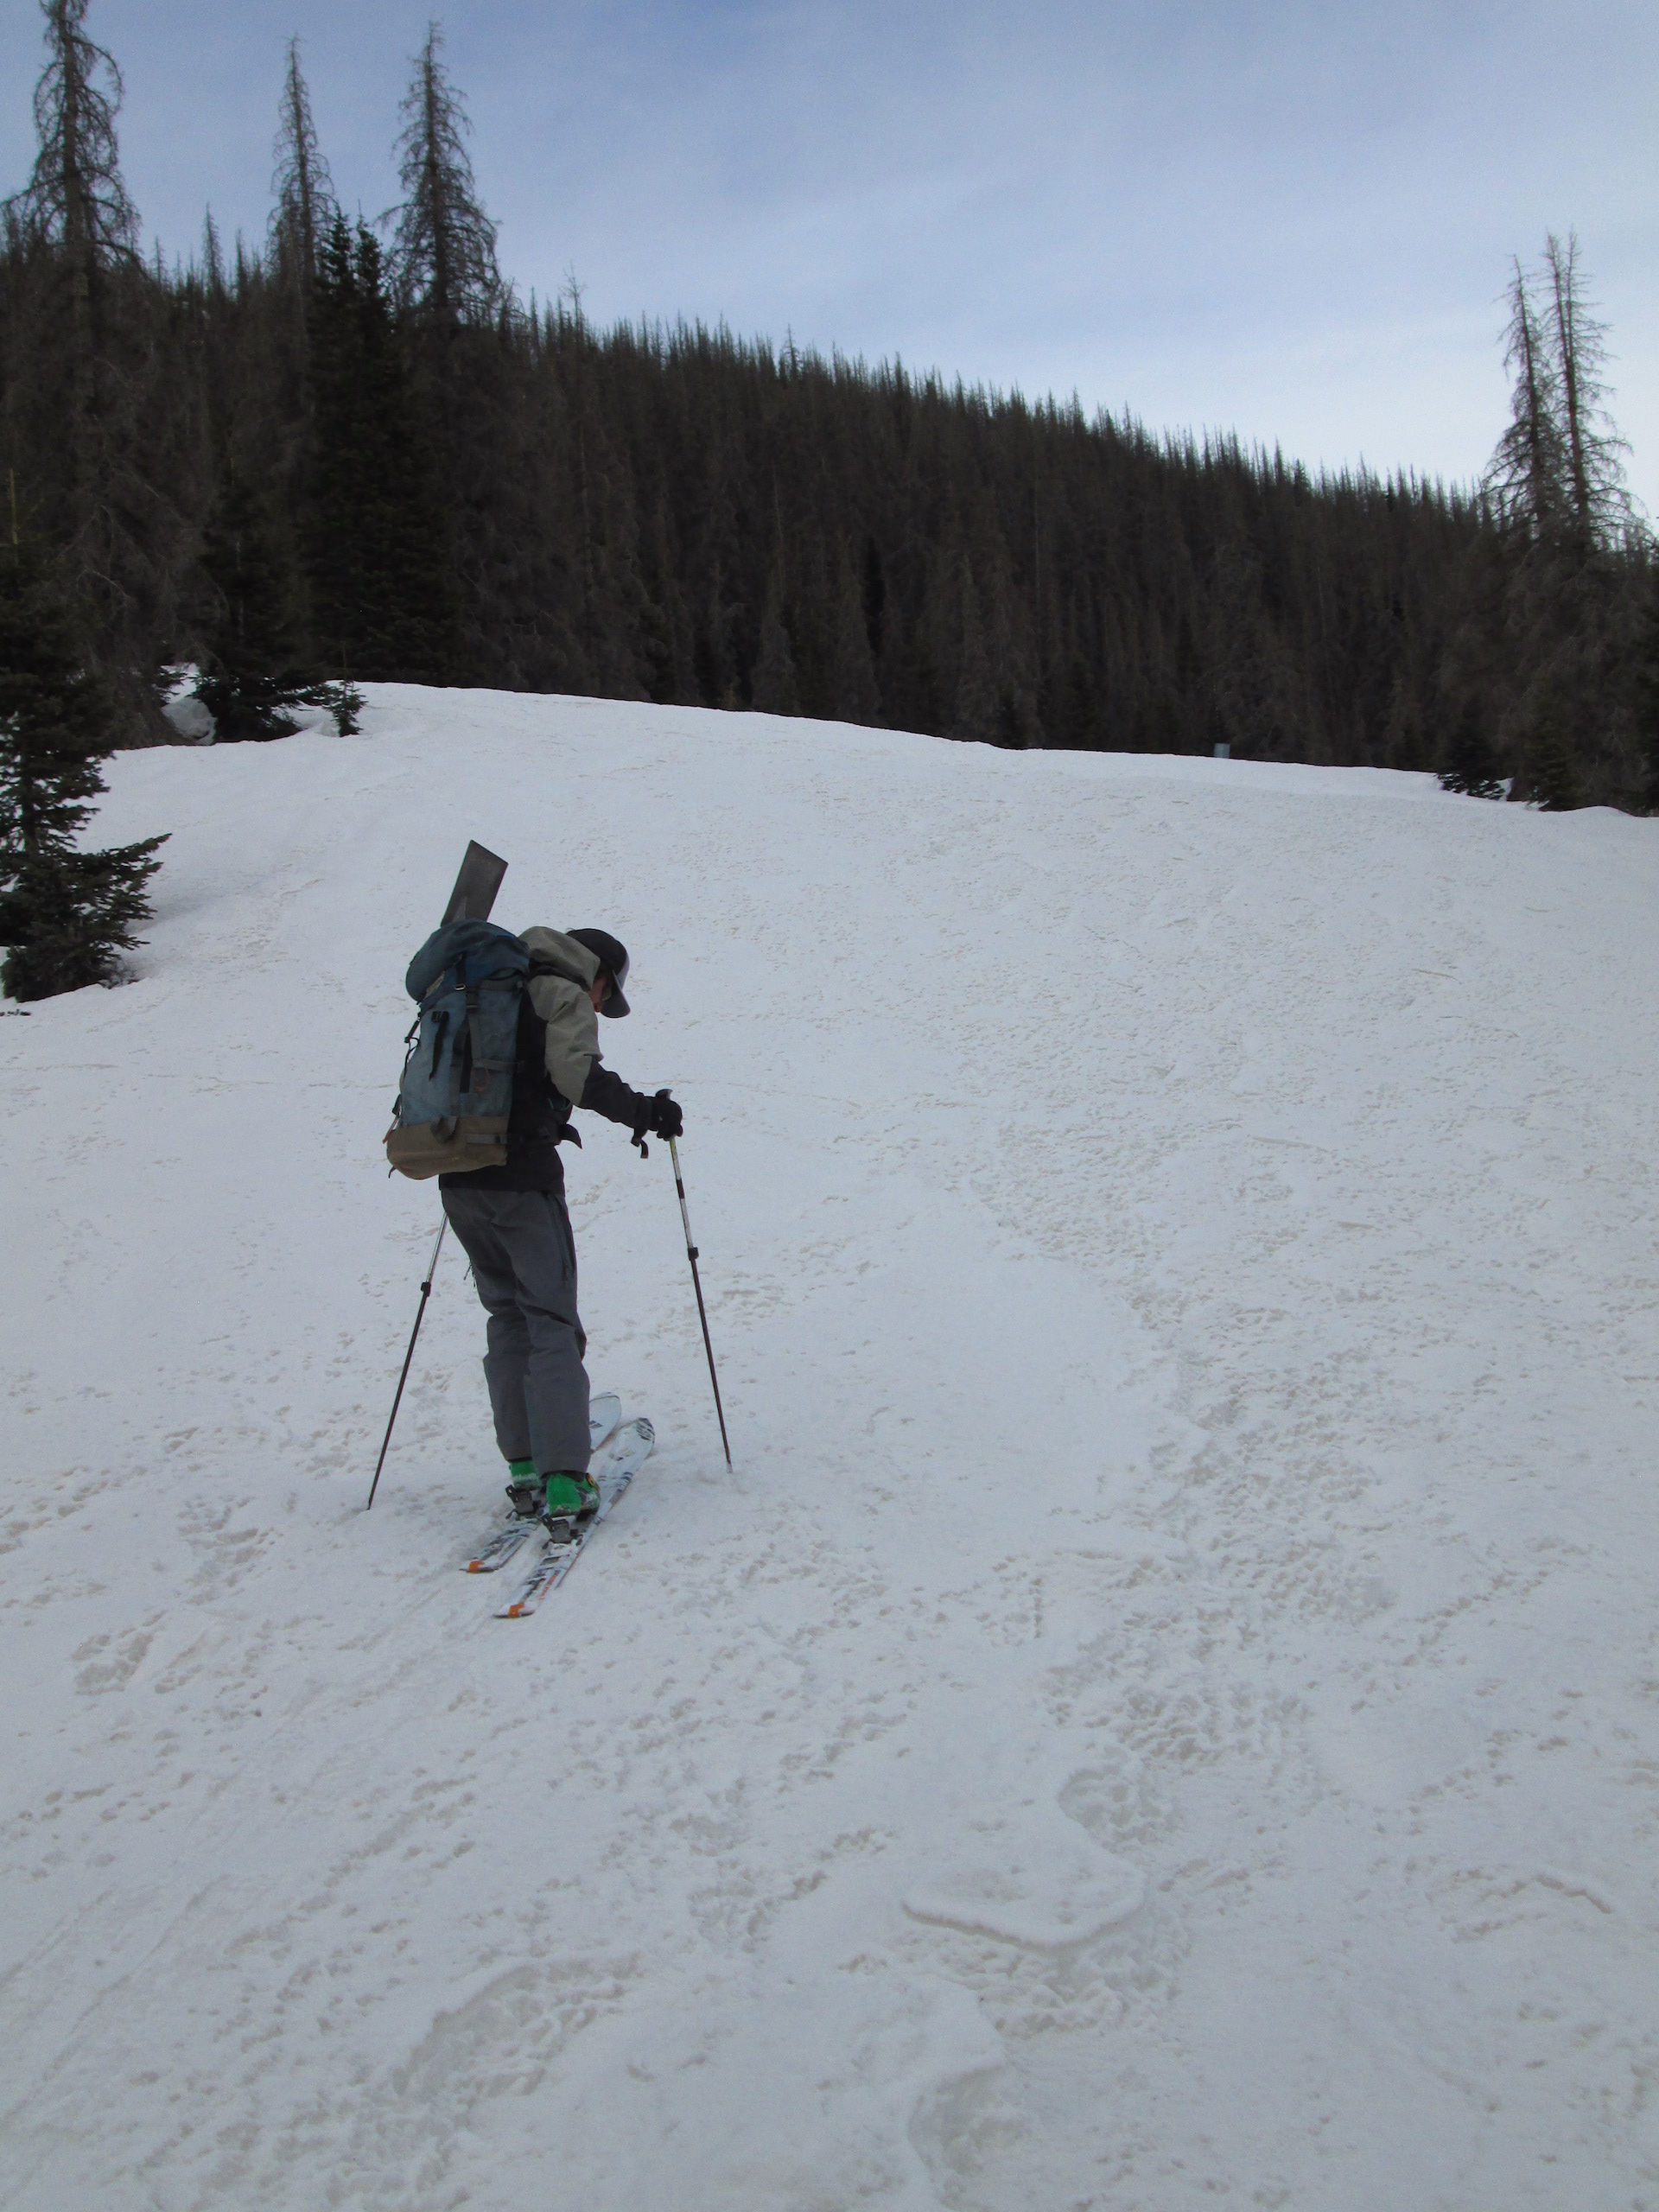 Dust layer D3-WY2015 was plainly visible under a trace of new snow, likely merged with layers D2 and D1. Additional dark flecks of debris from nearby beetle killed spruce trees were also observed, contributing to the darkening of the snow surface.